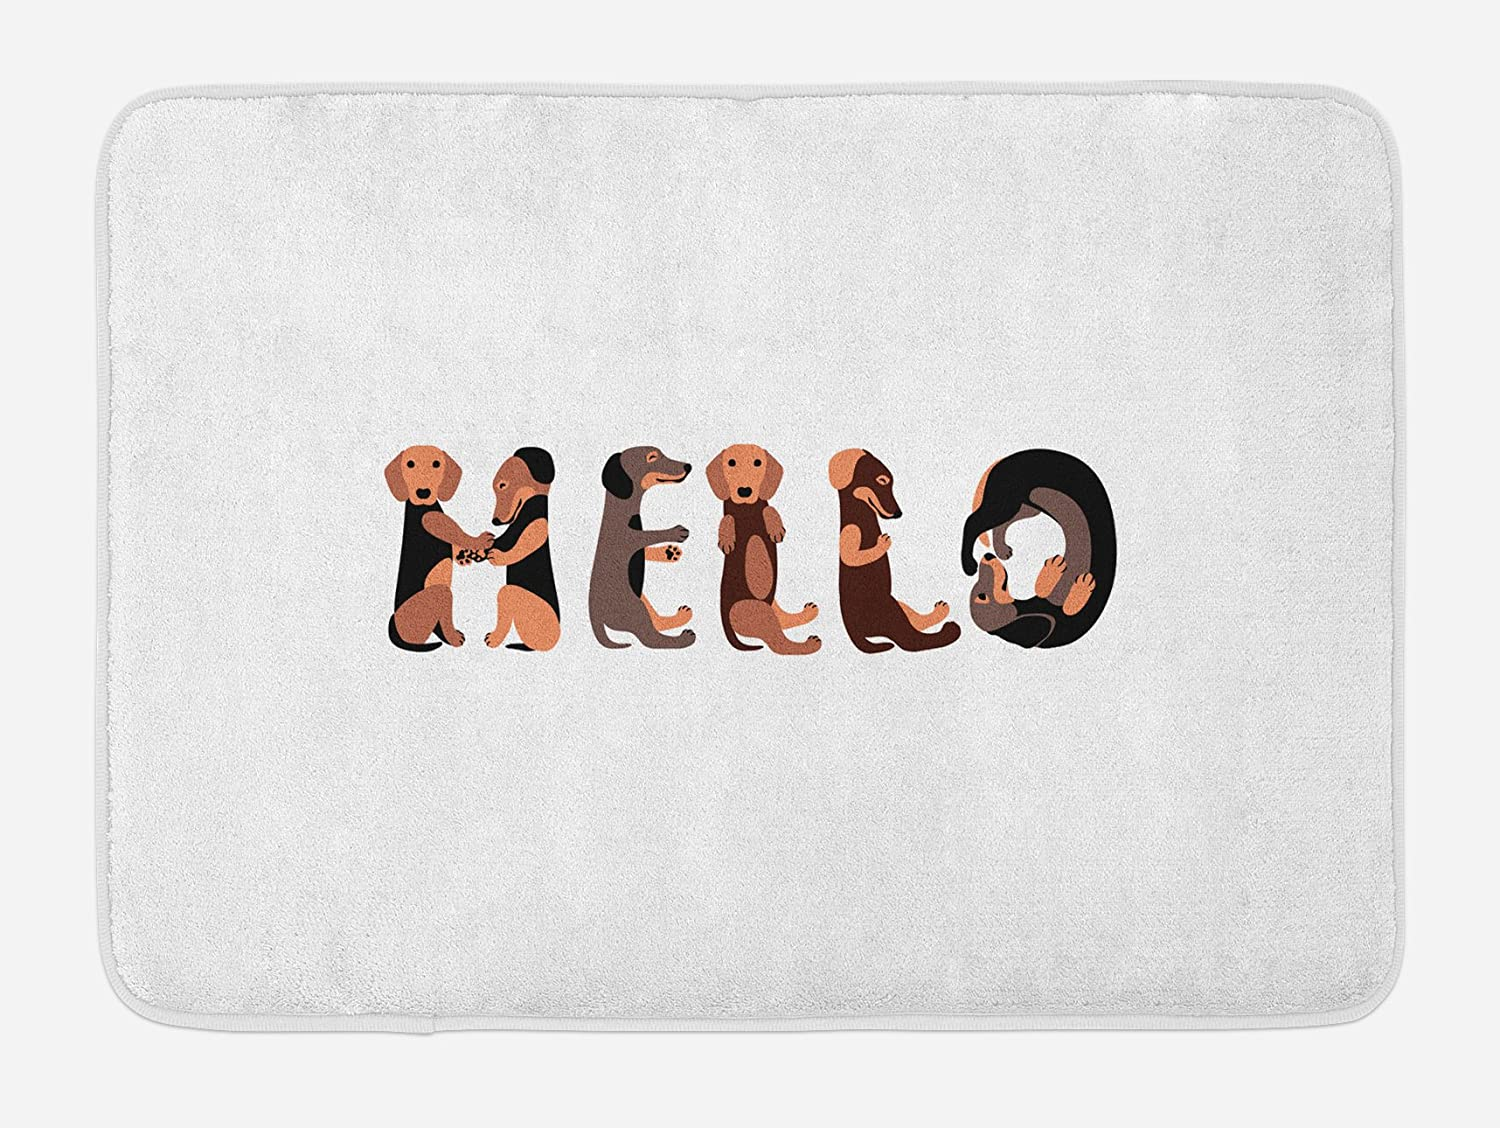 "Ambesonne Dachshund Bath Mat, Dachshund Puppies Spelling The Word Hello Animal Font Design, Plush Bathroom Decor Mat with Non Slip Backing, 29.5"" X 17.5"", Caramel Brown"